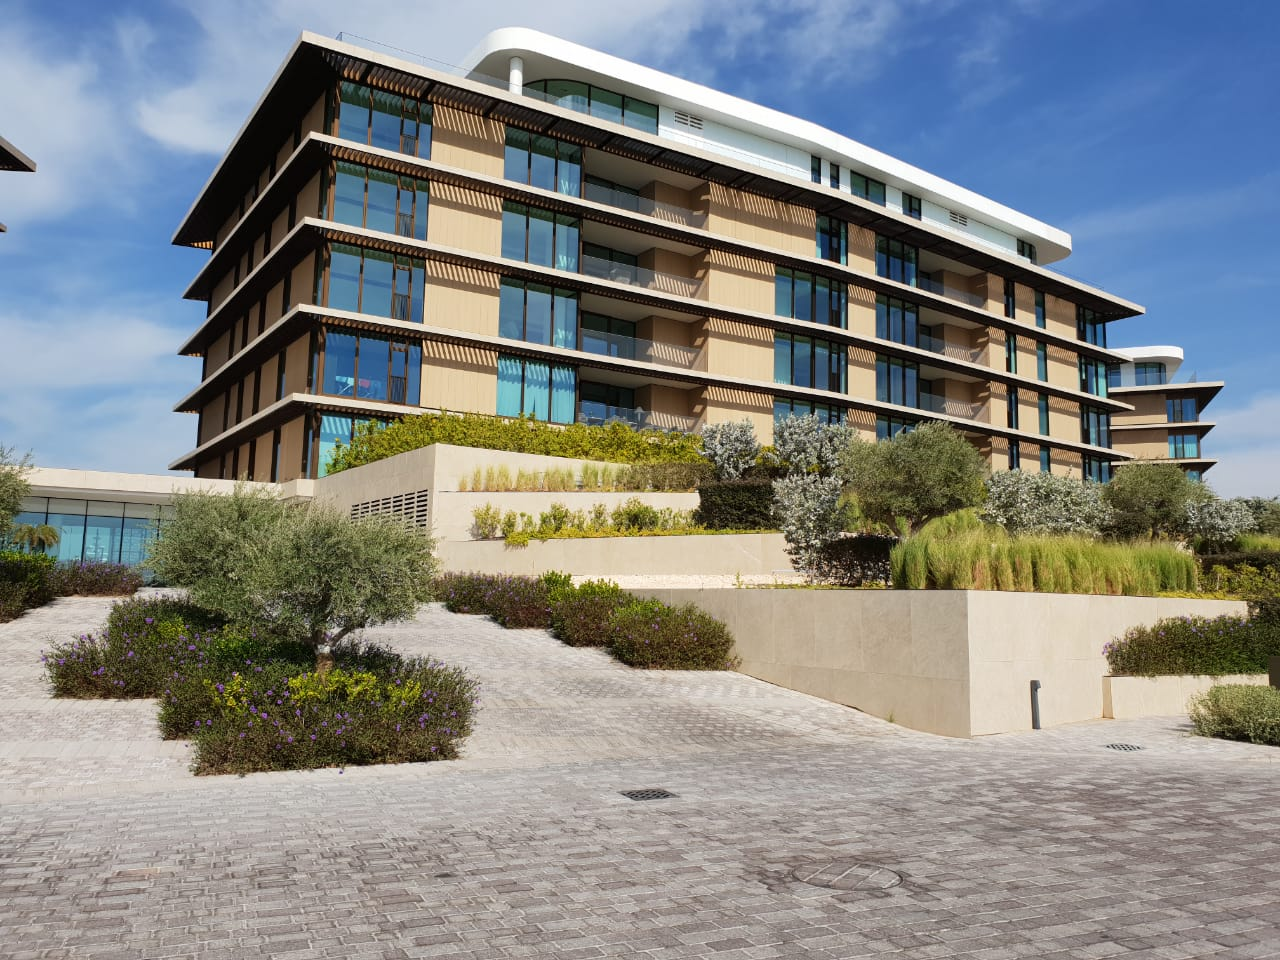 Bvlgari Resort and Residences – 3 BR Apartment for Sale